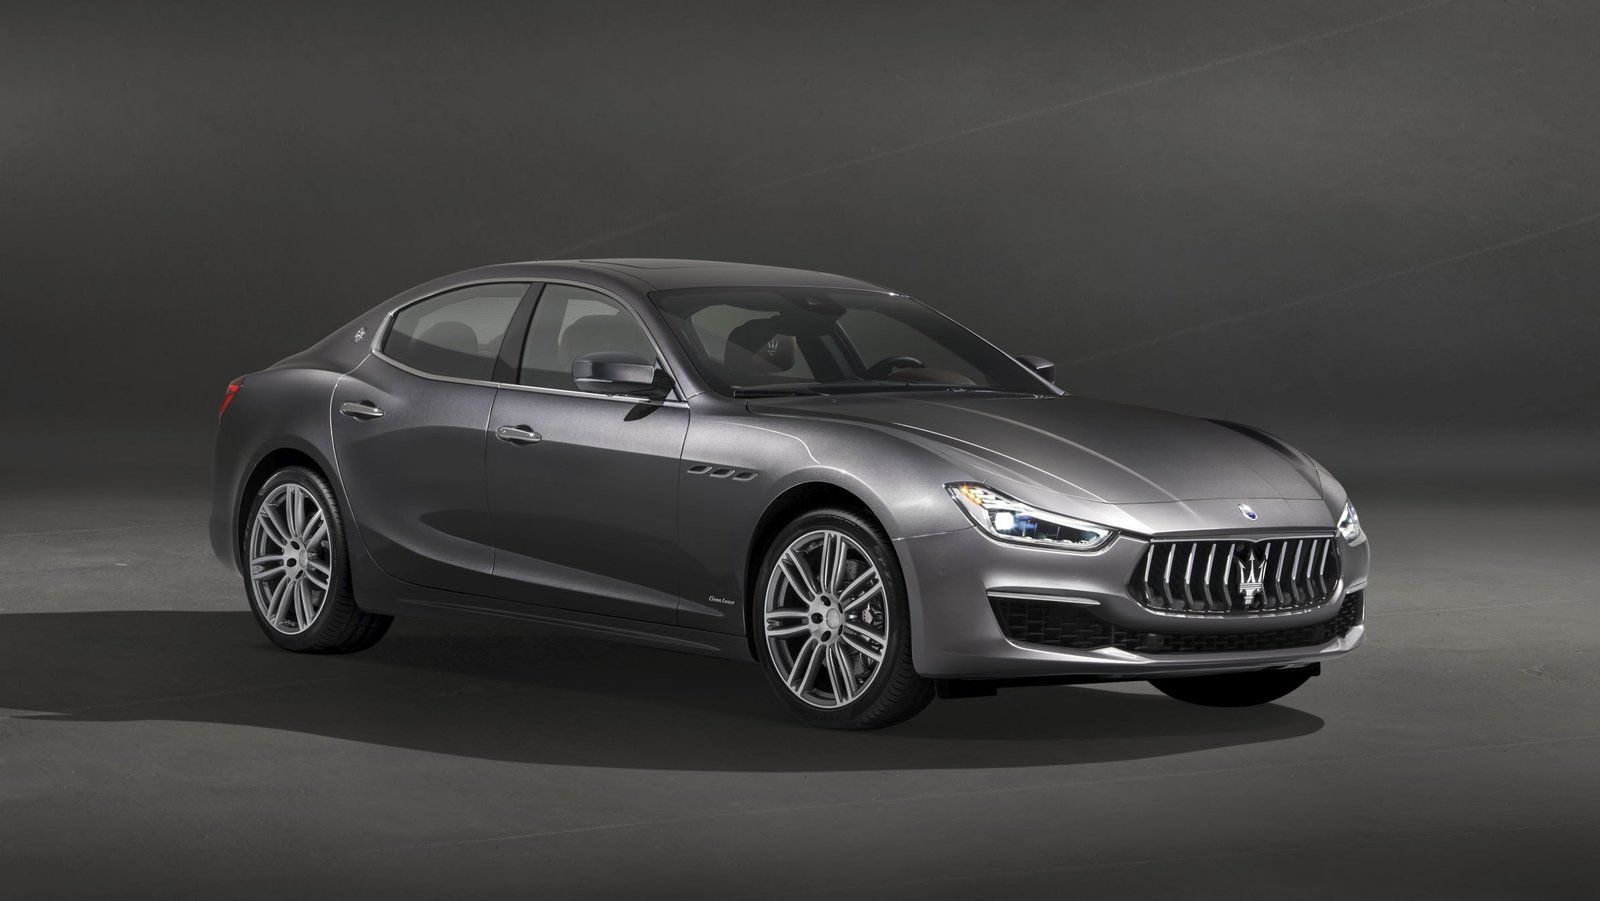 2018 maserati cost. beautiful cost inside 2018 maserati cost